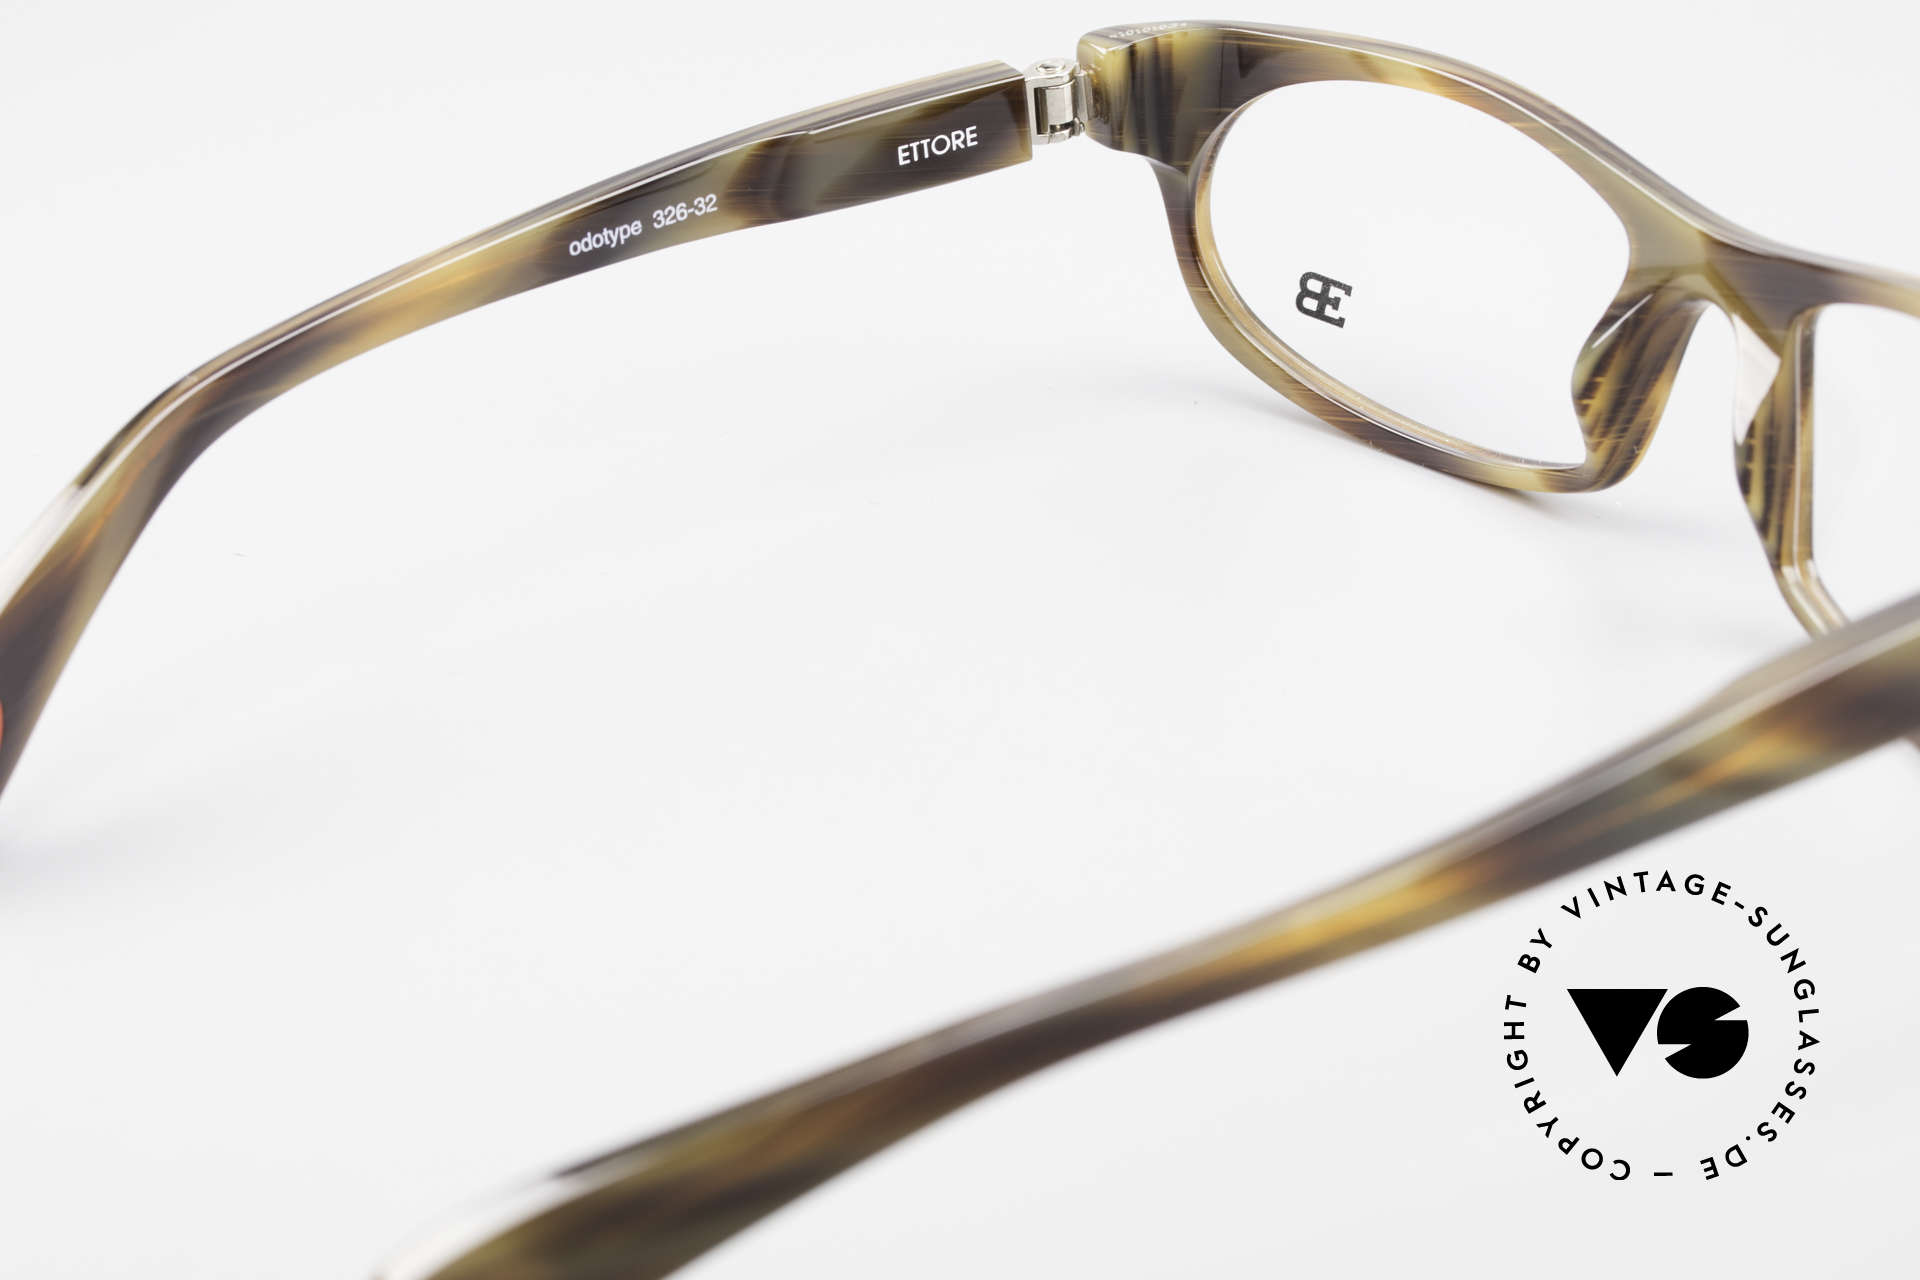 Bugatti 326 Odotype True Vintage Eyeglass-Frame, indescribable frame coloring: check photos!, Made for Men